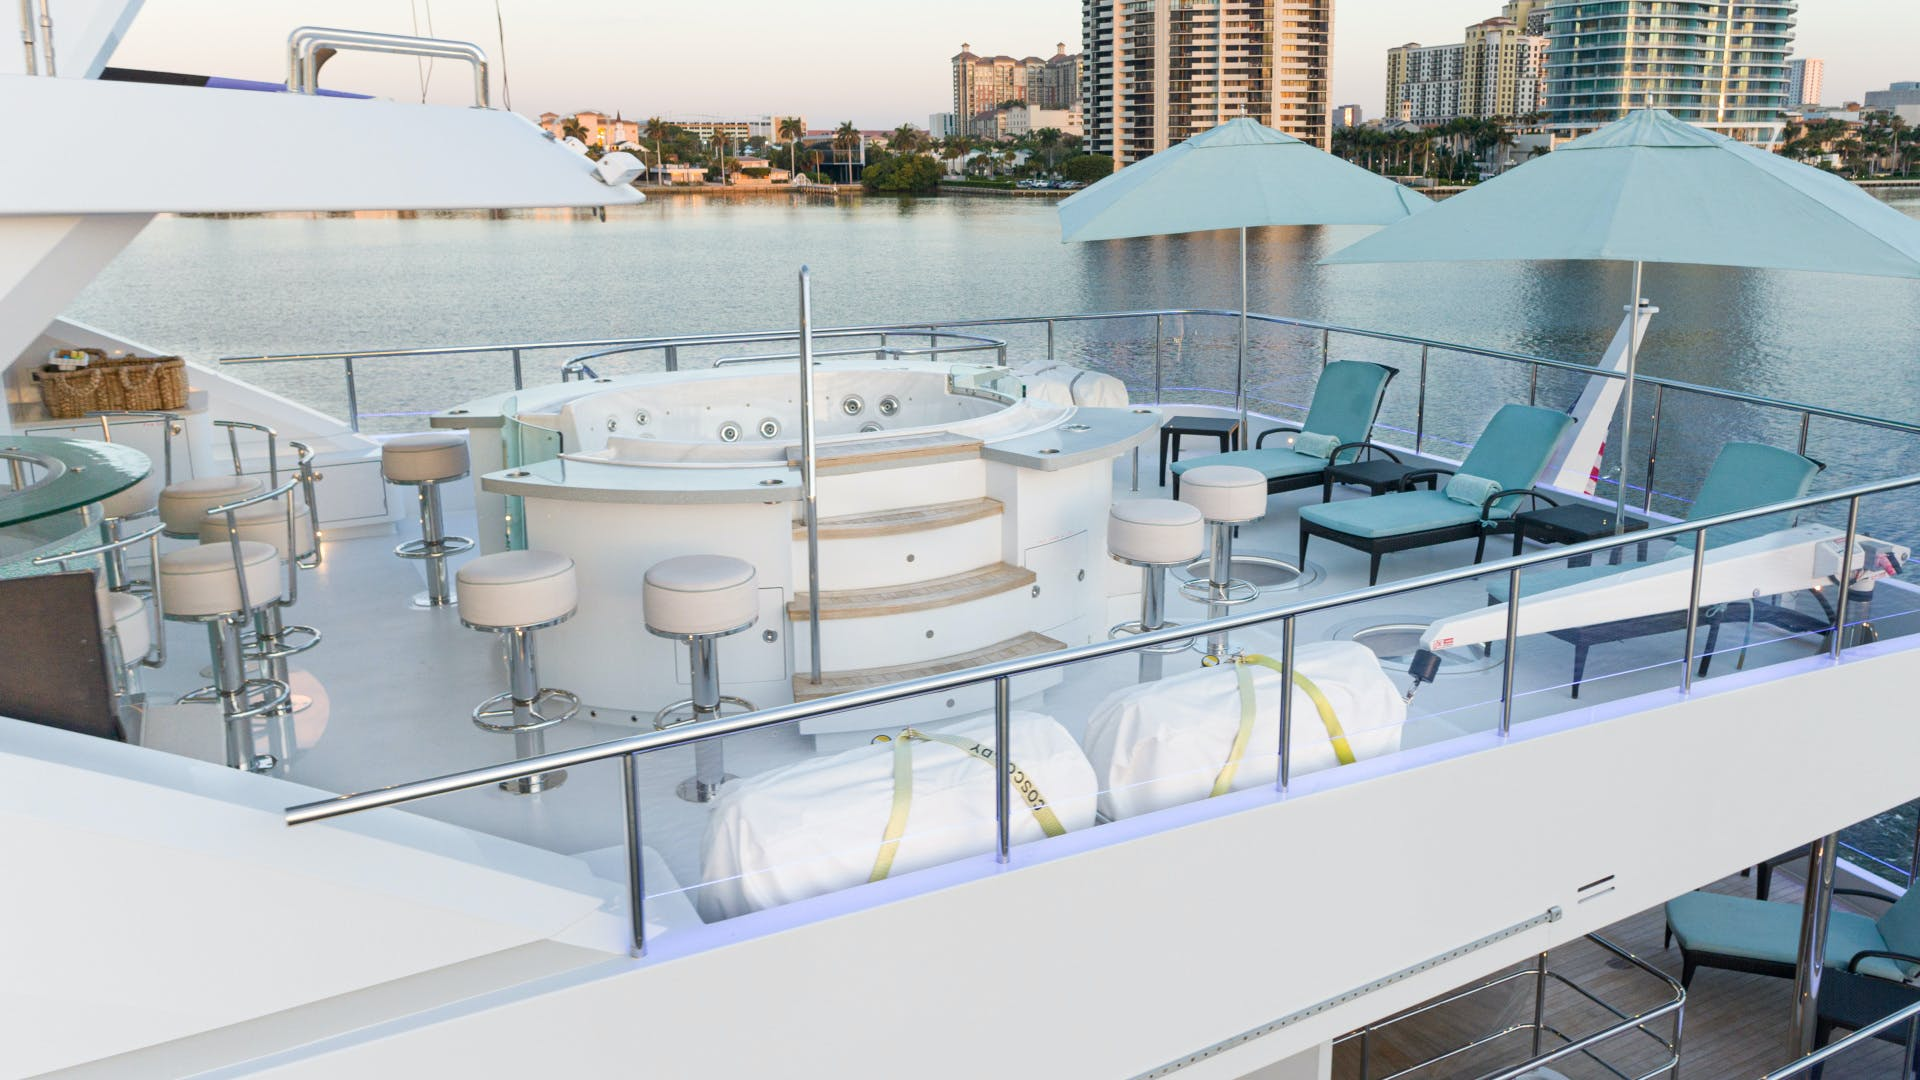 2016 IAG 133' Motor Yacht SERENITY   Picture 5 of 120